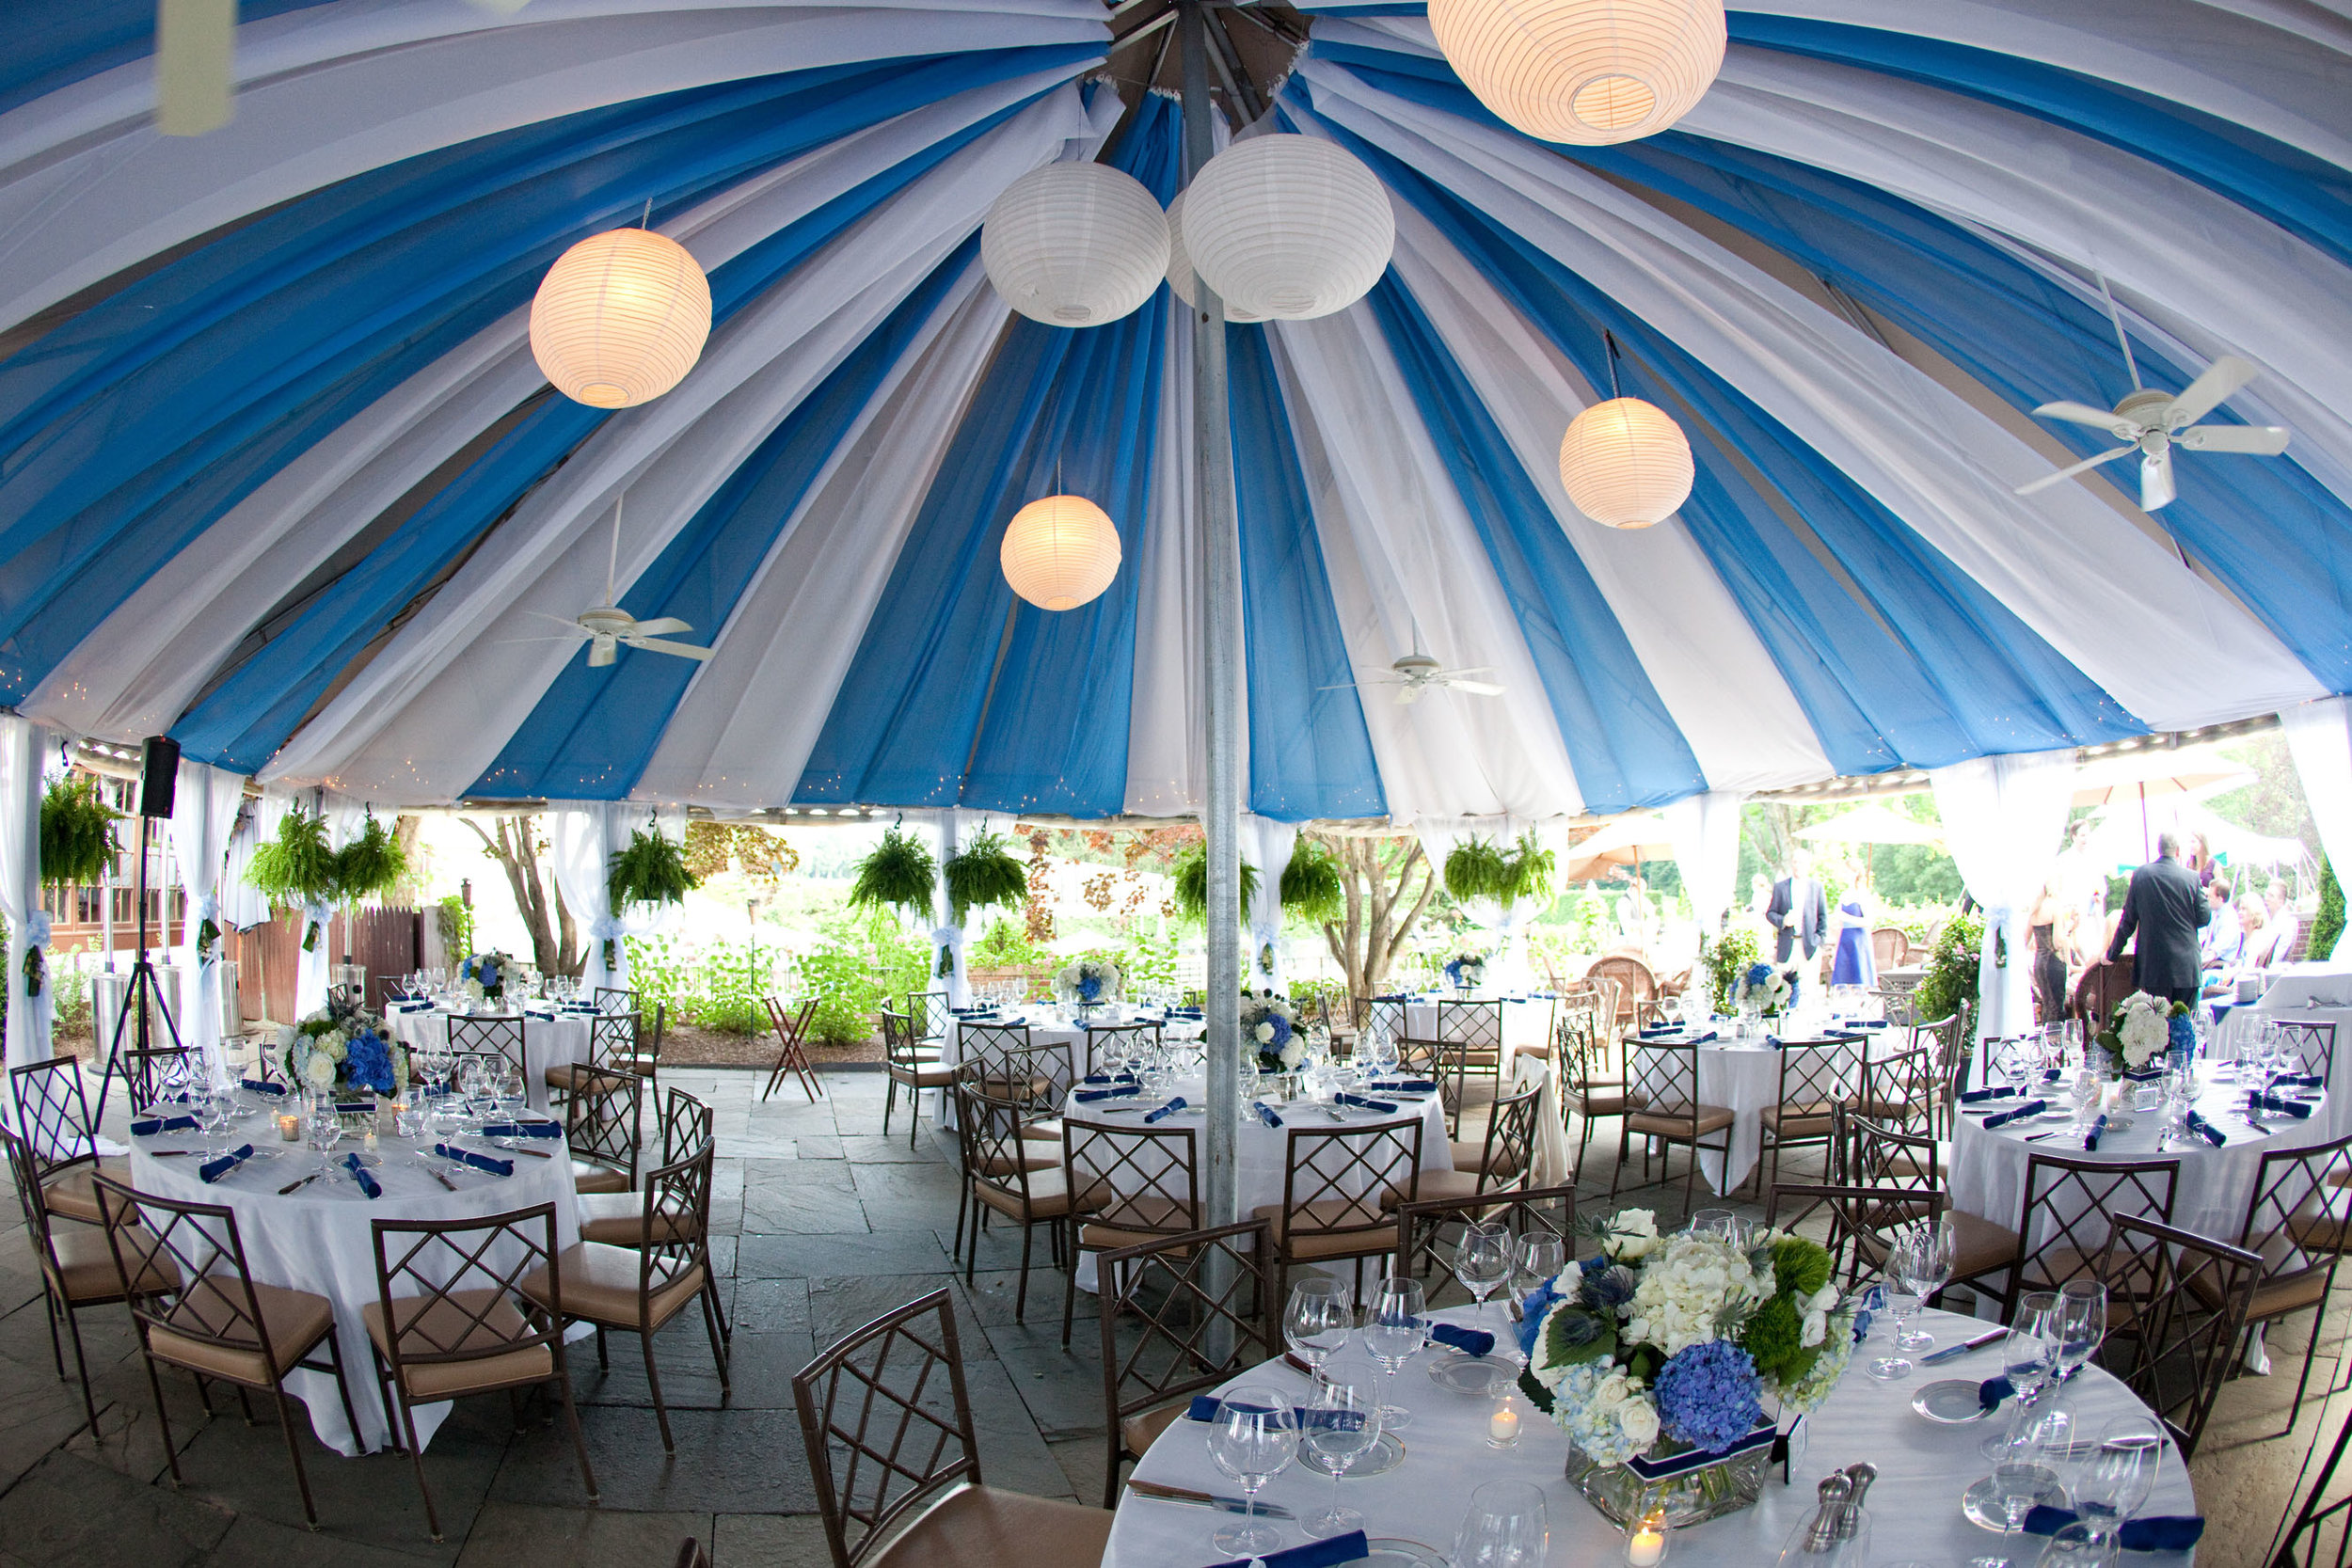 Courtyard Canopy - WEDDING READY!, Longmeadow CC